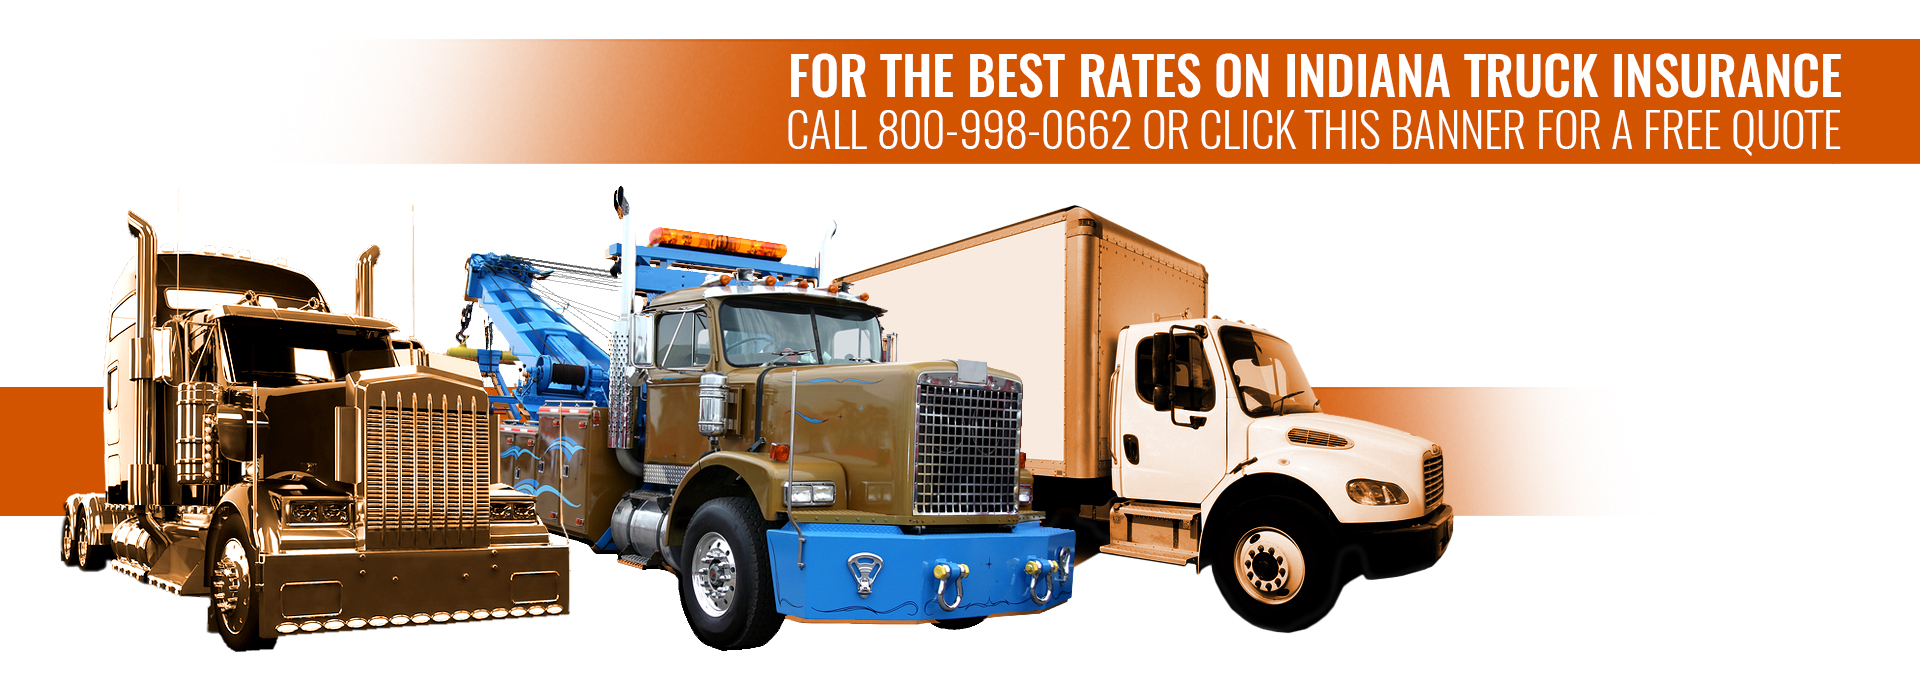 Commercial Truck Insurance Indiana